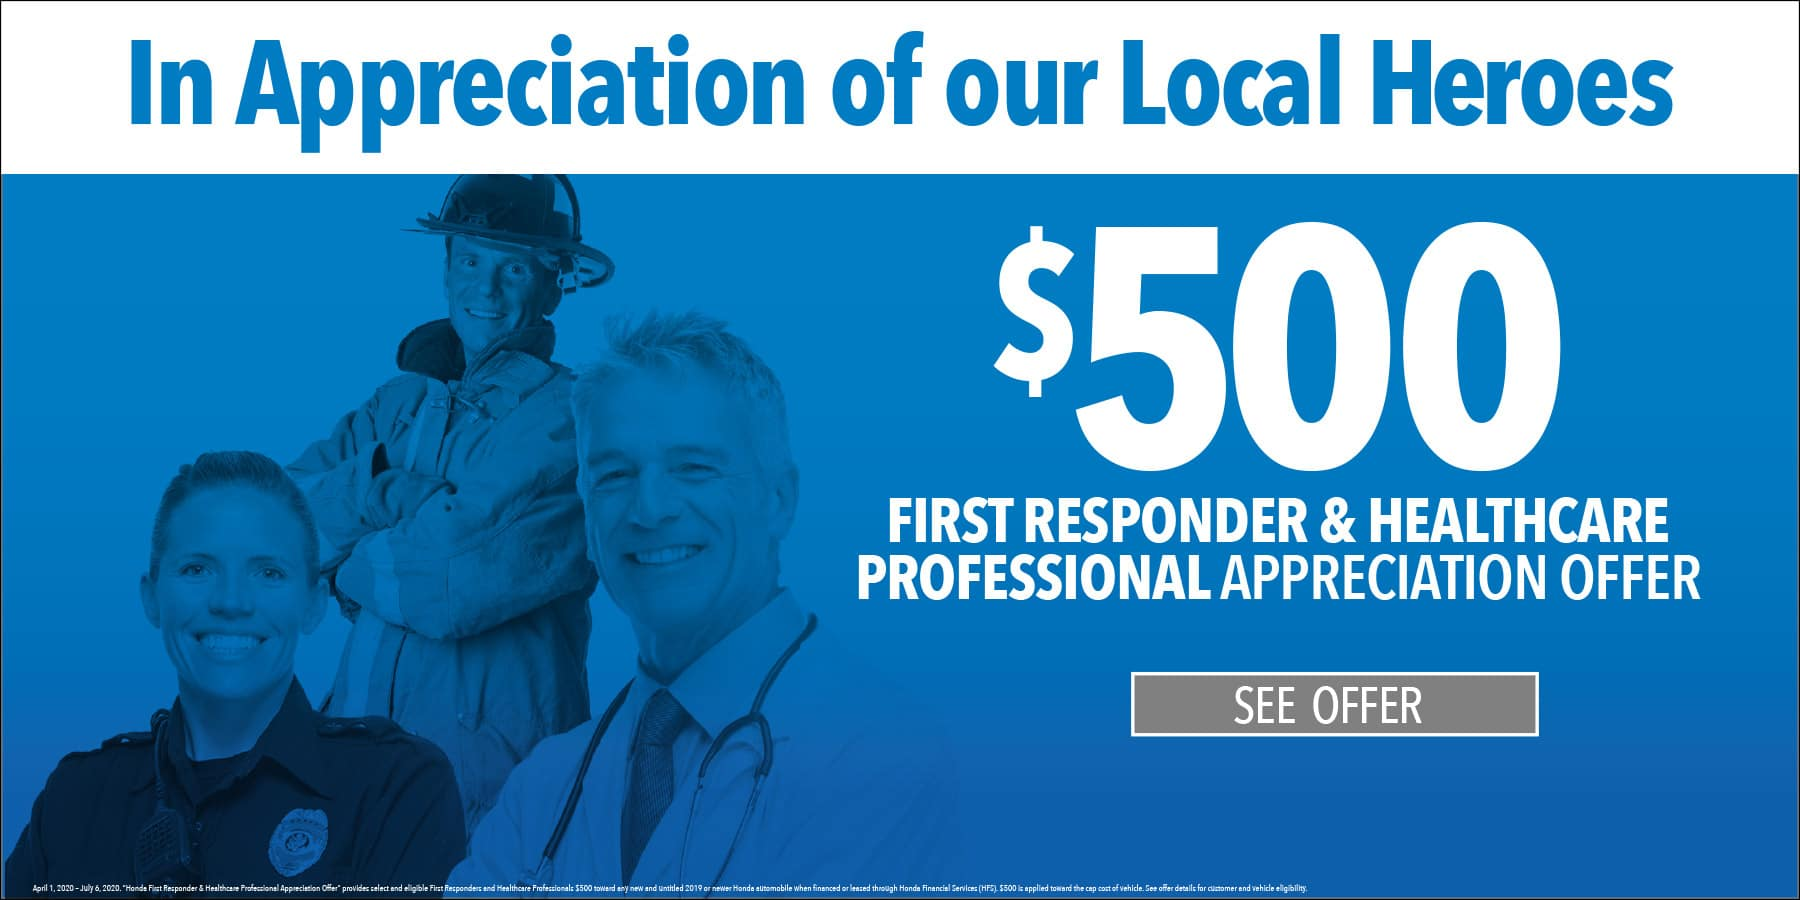 $500 appreciation offer for hereos, first responders and healthcare professionals